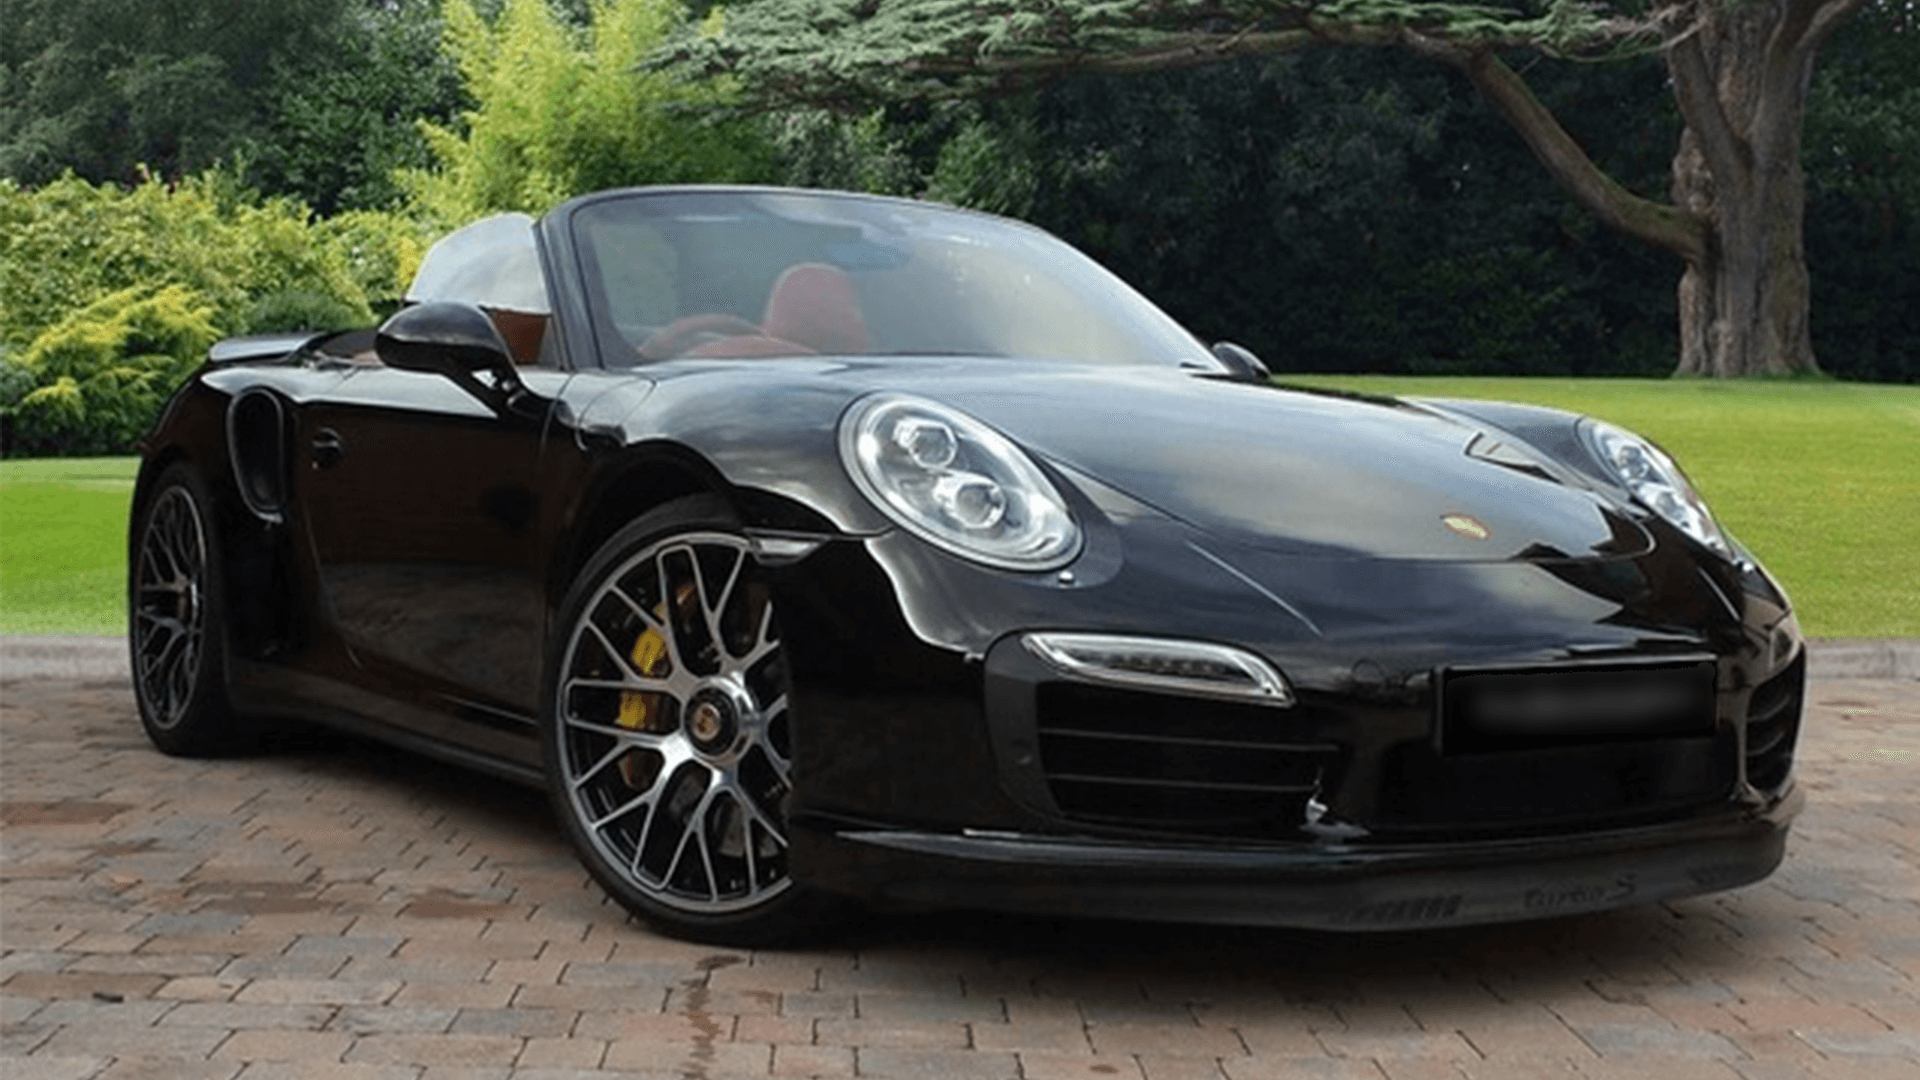 porsche 911 turbo s car hire rentals and hire packages